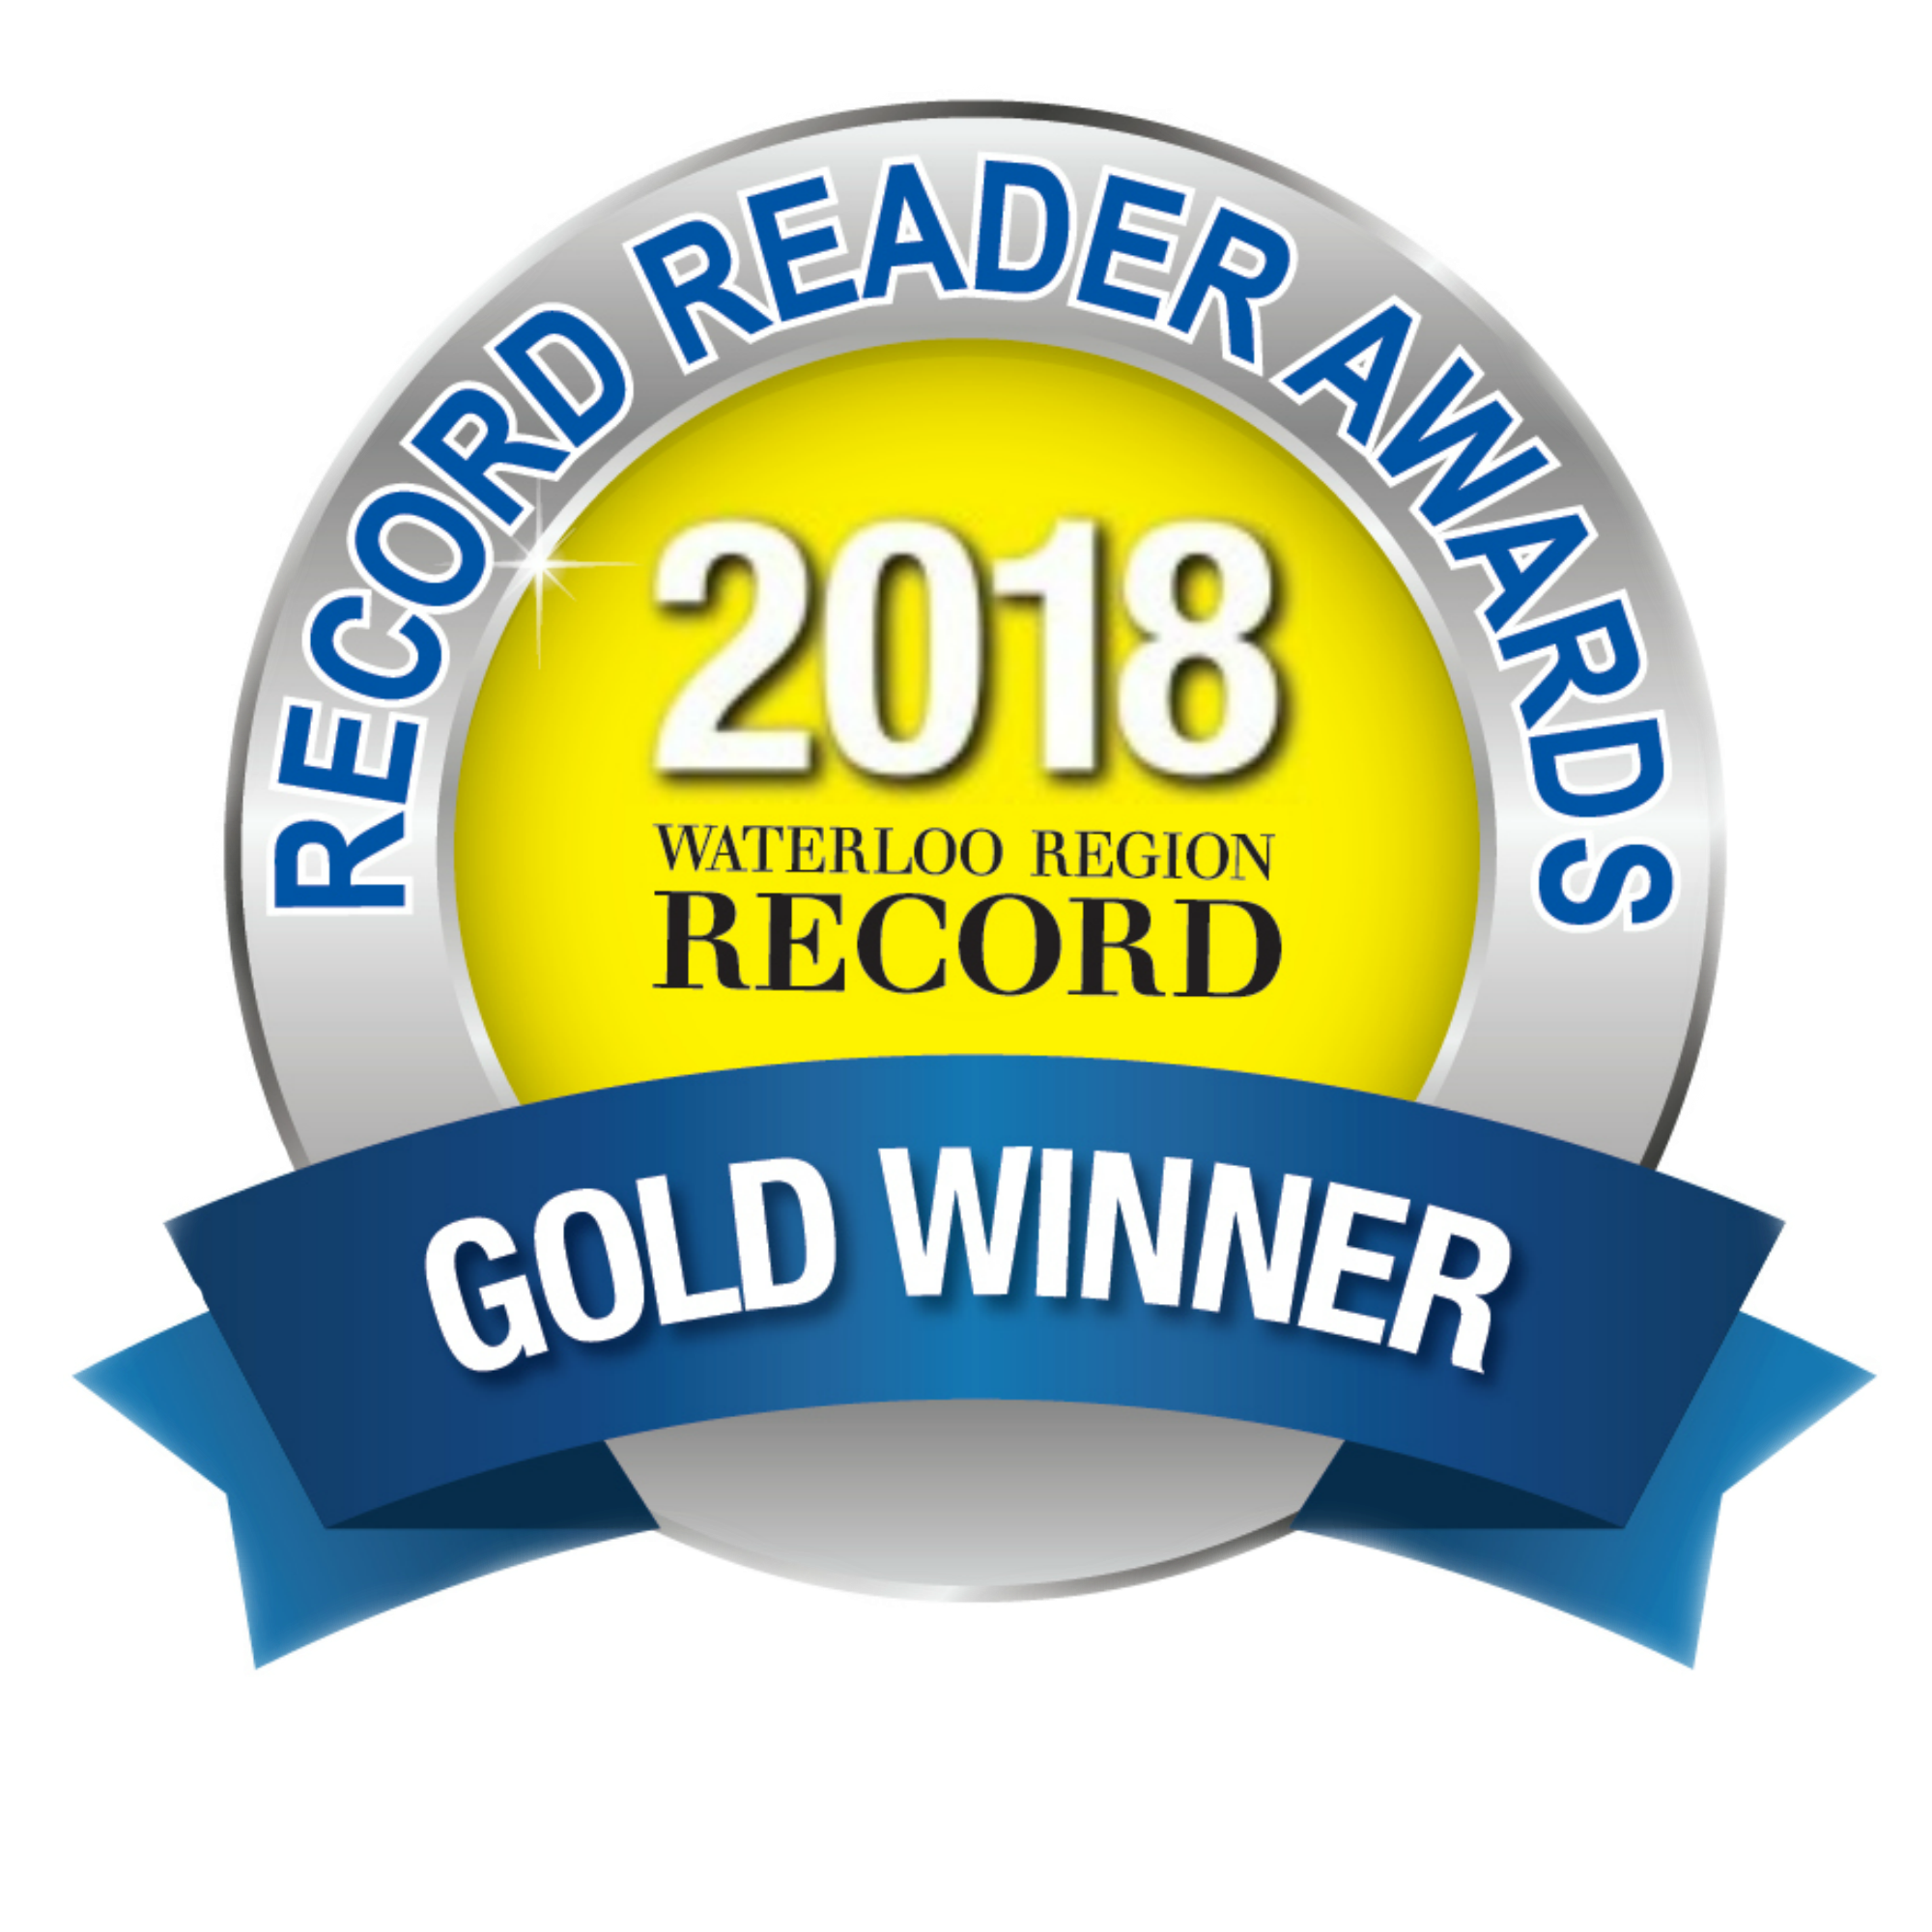 Record Readers Awards 2018